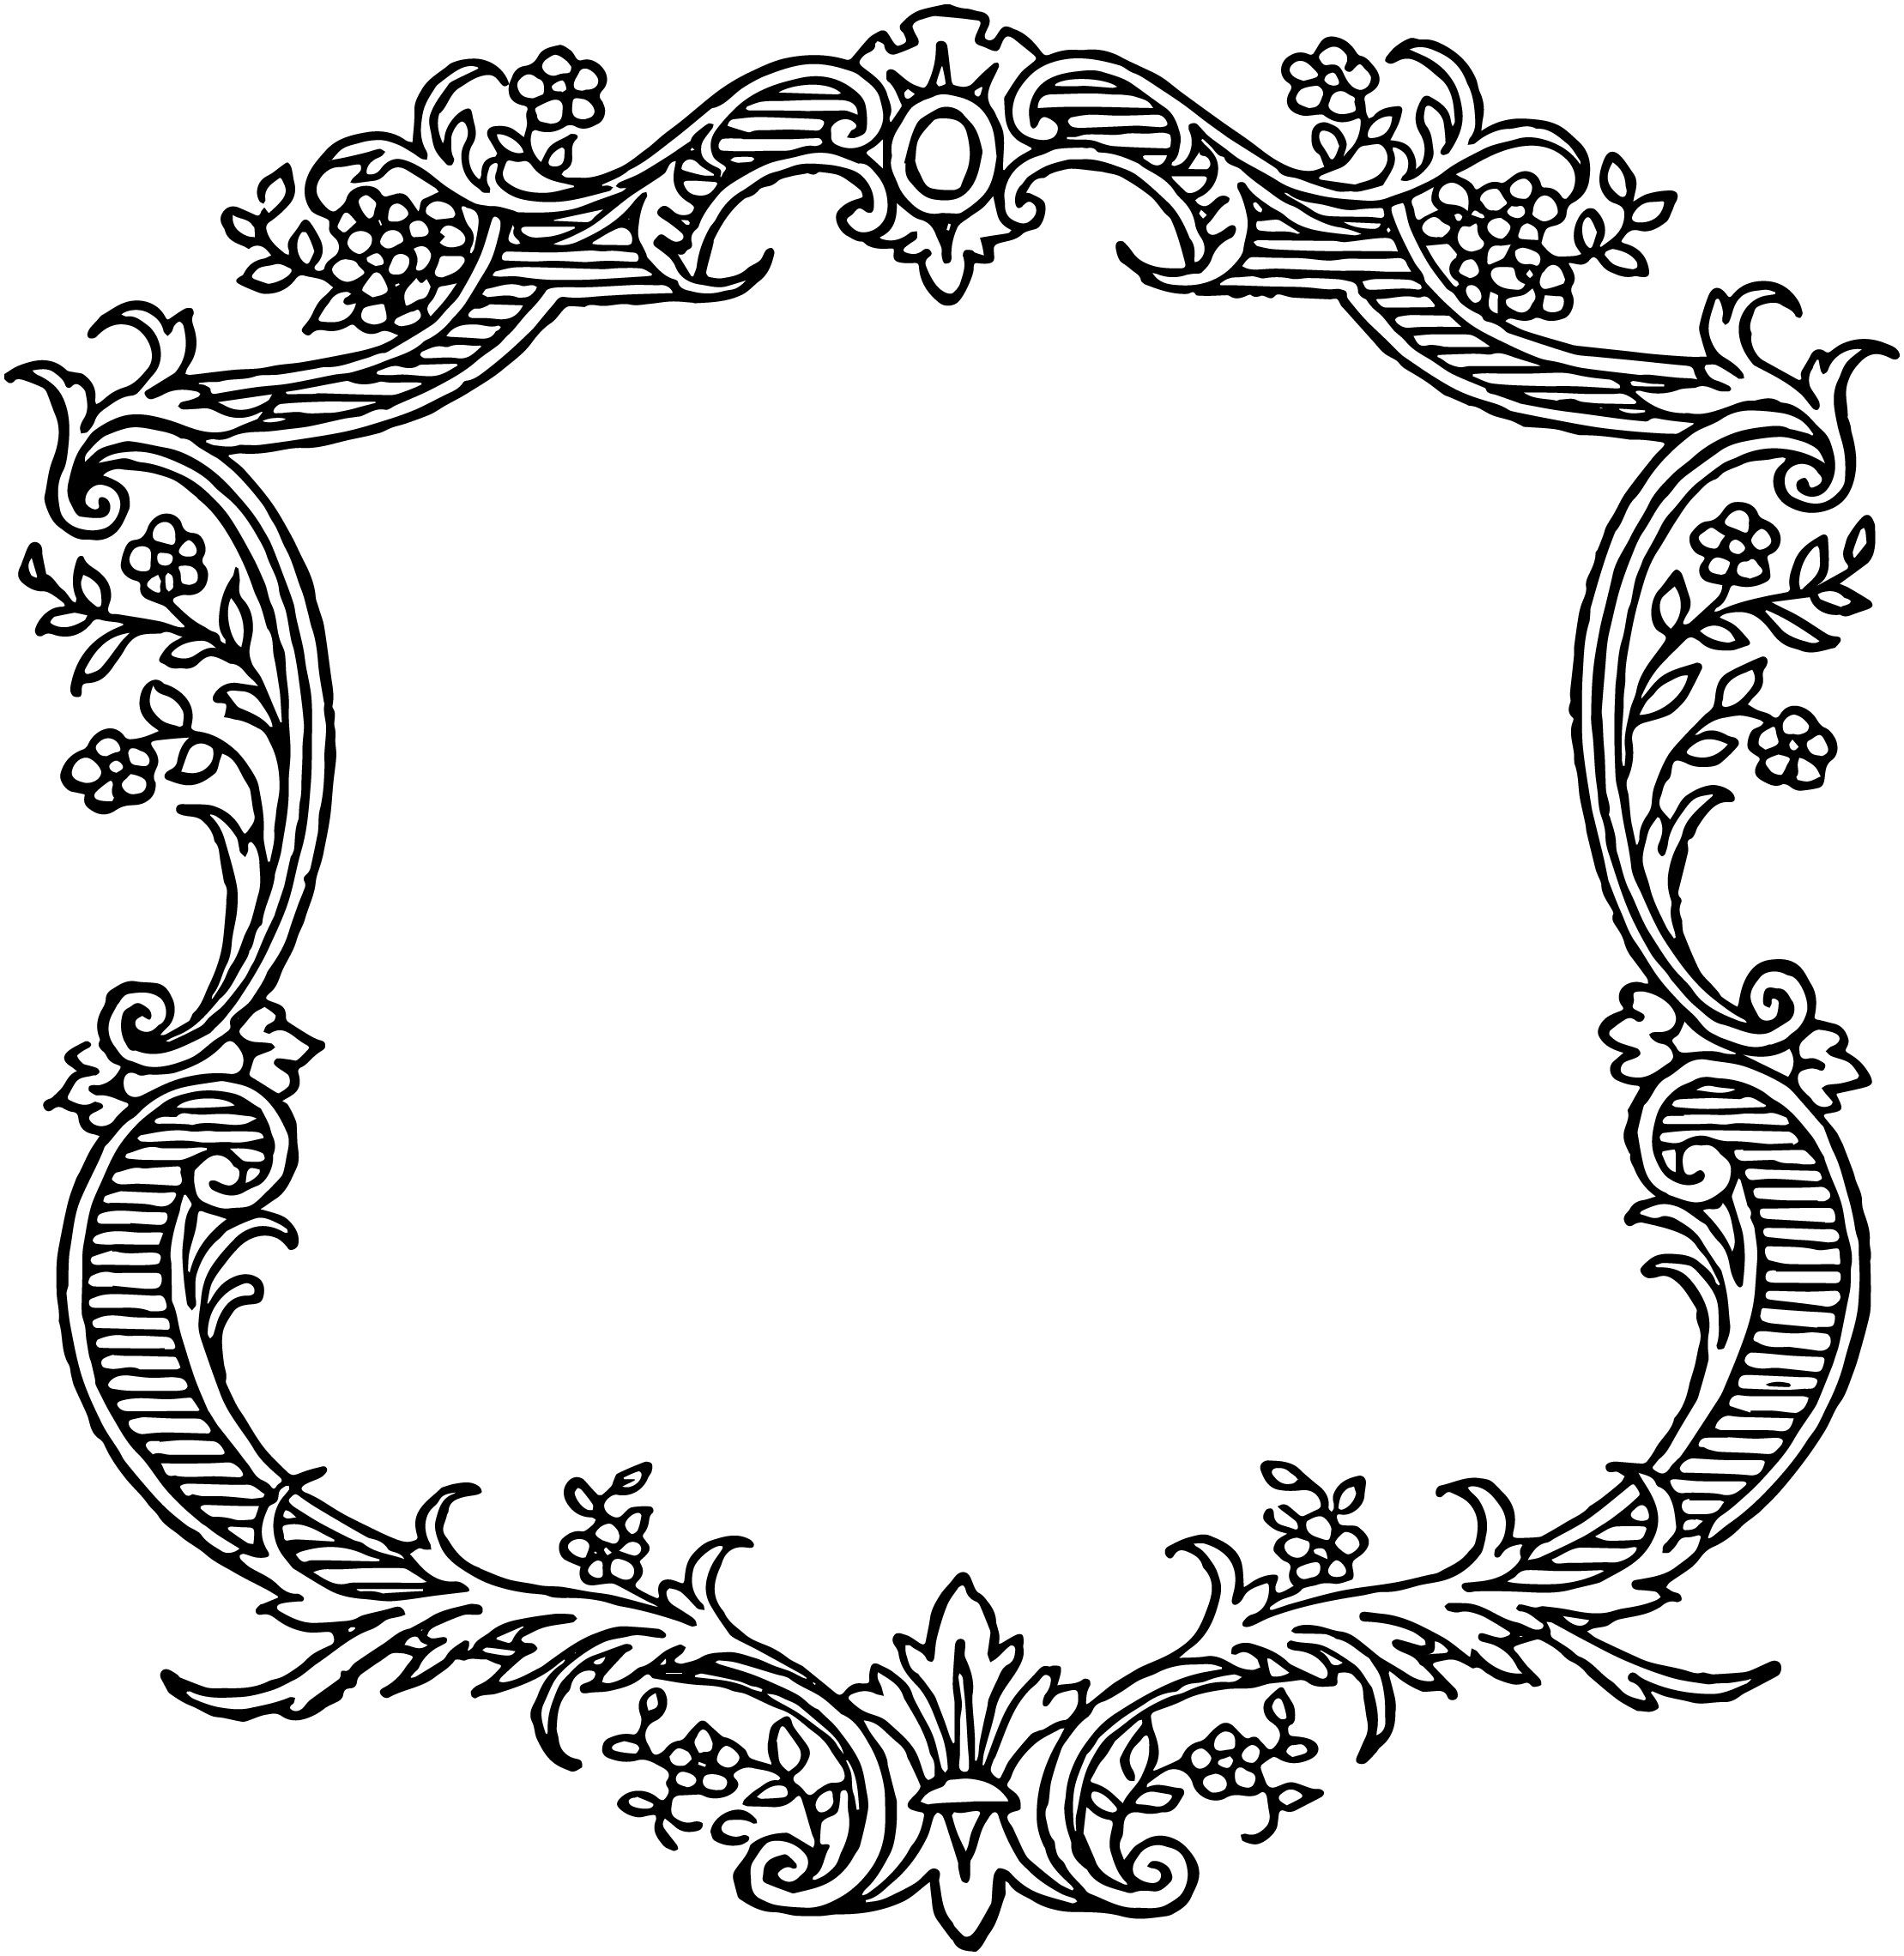 Free Vintage Floral Scroll Border Frame